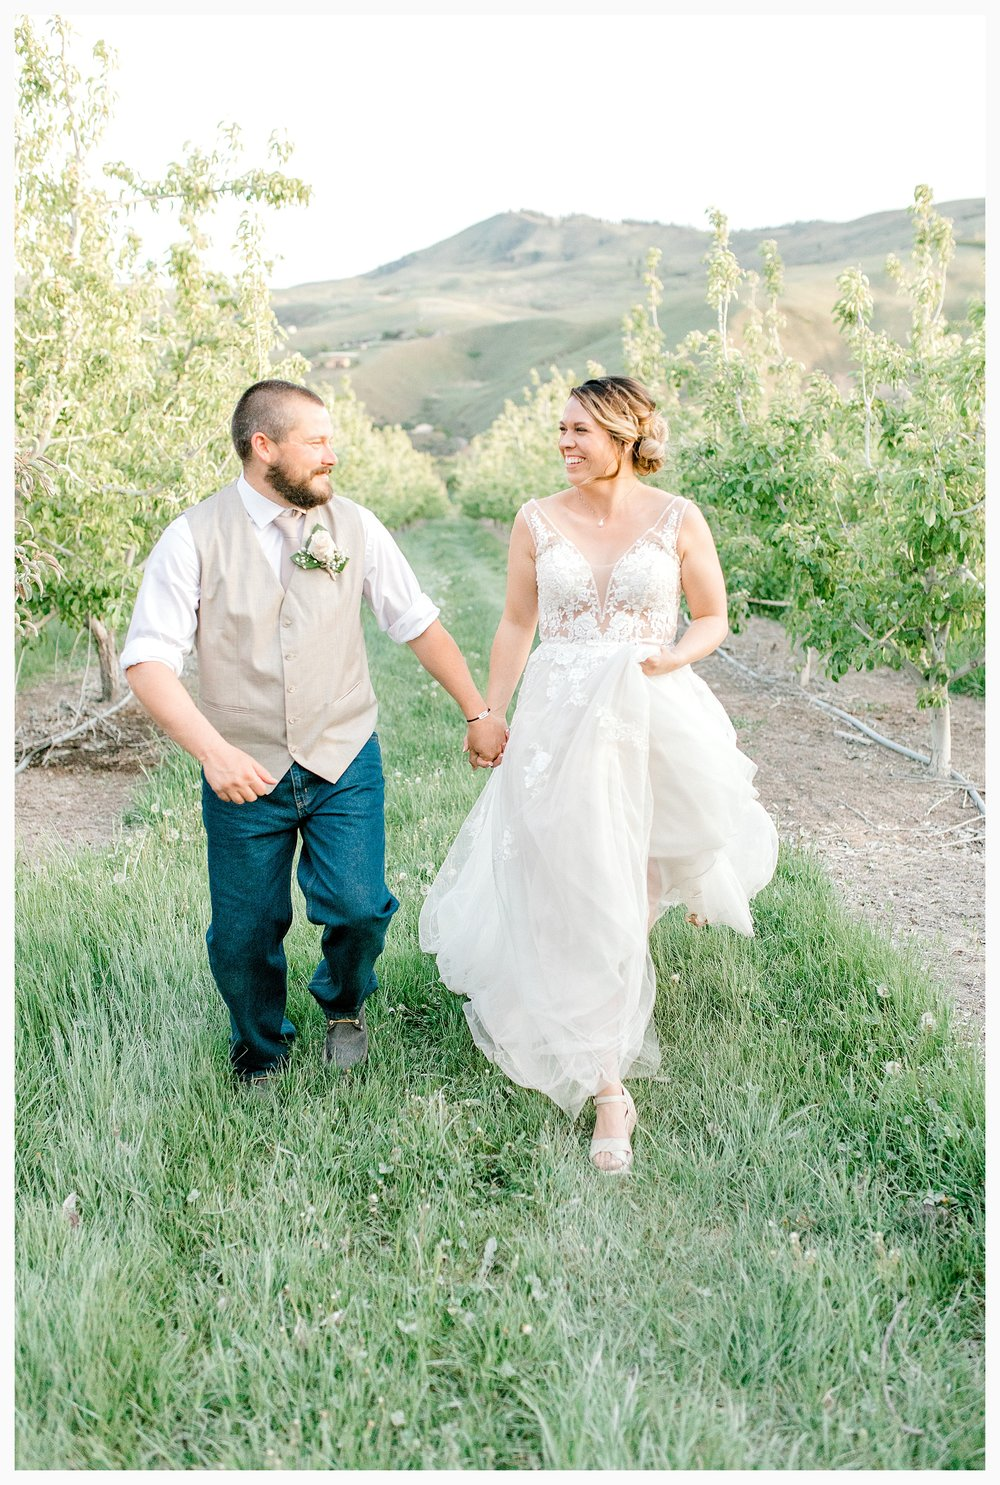 Rustic barn wedding in Wenatchee Washington at Sunshine Ranch on Easy Street, Emma Rose Company Seattle PNW Light and Airy Wedding Photographer_0135.jpg